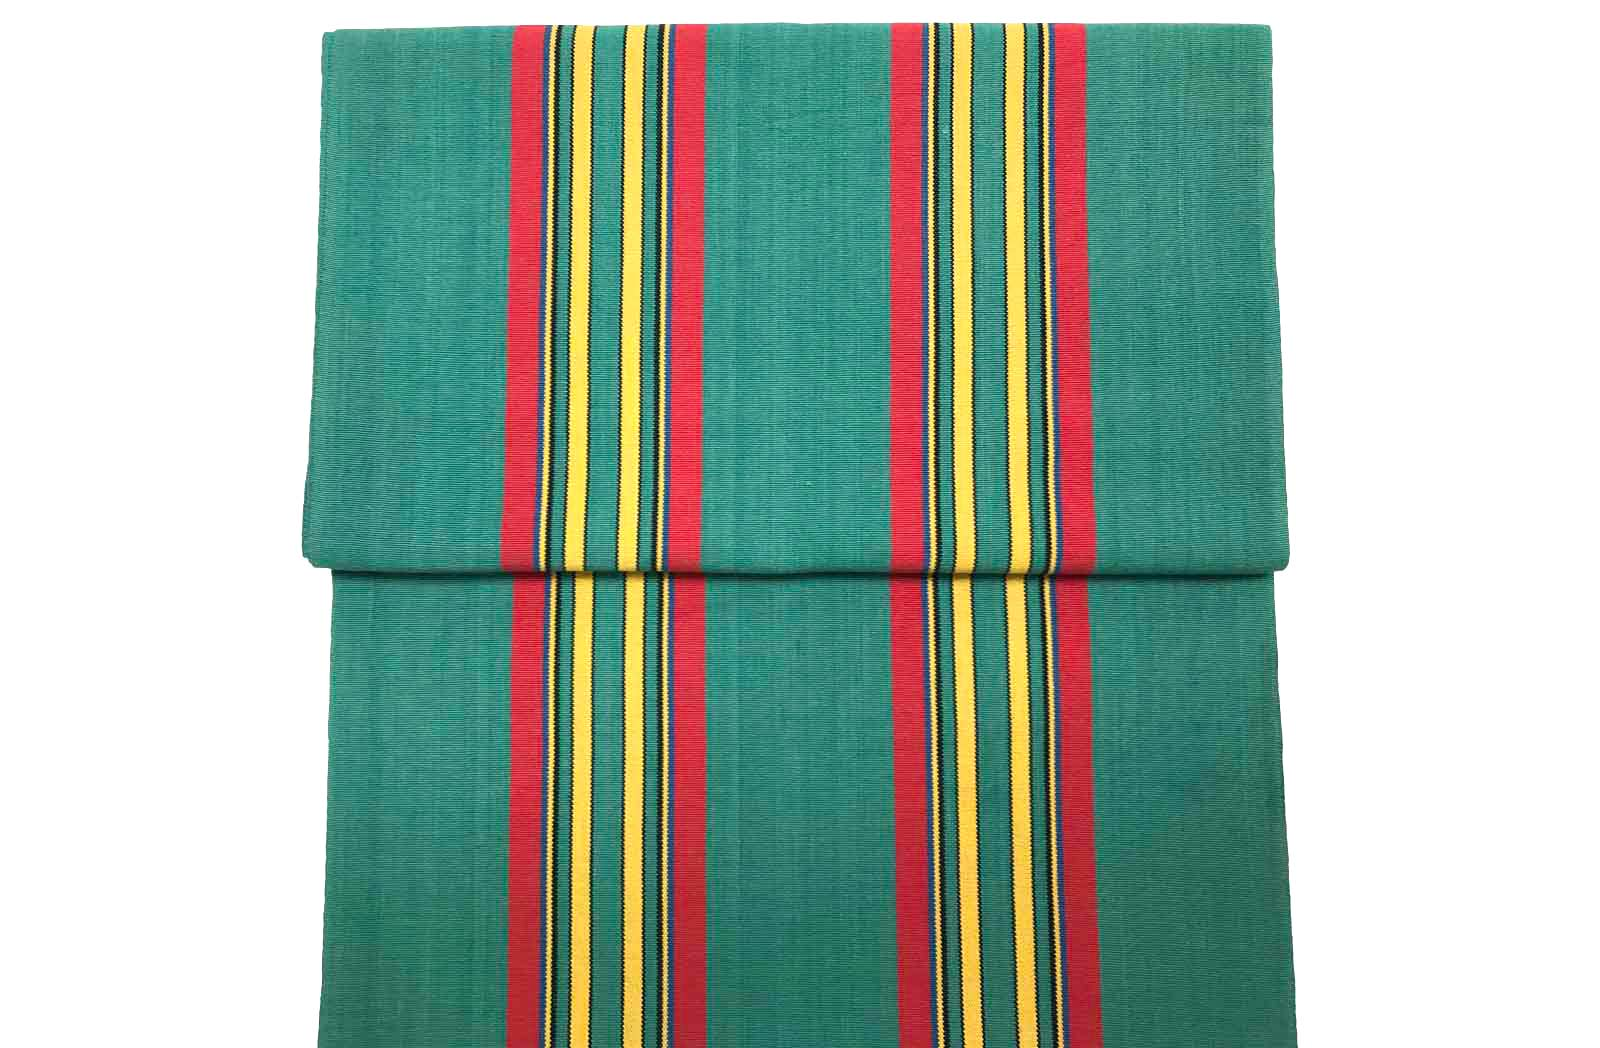 Vintage Deckchair Fabric Jade green, red, yellow stripes